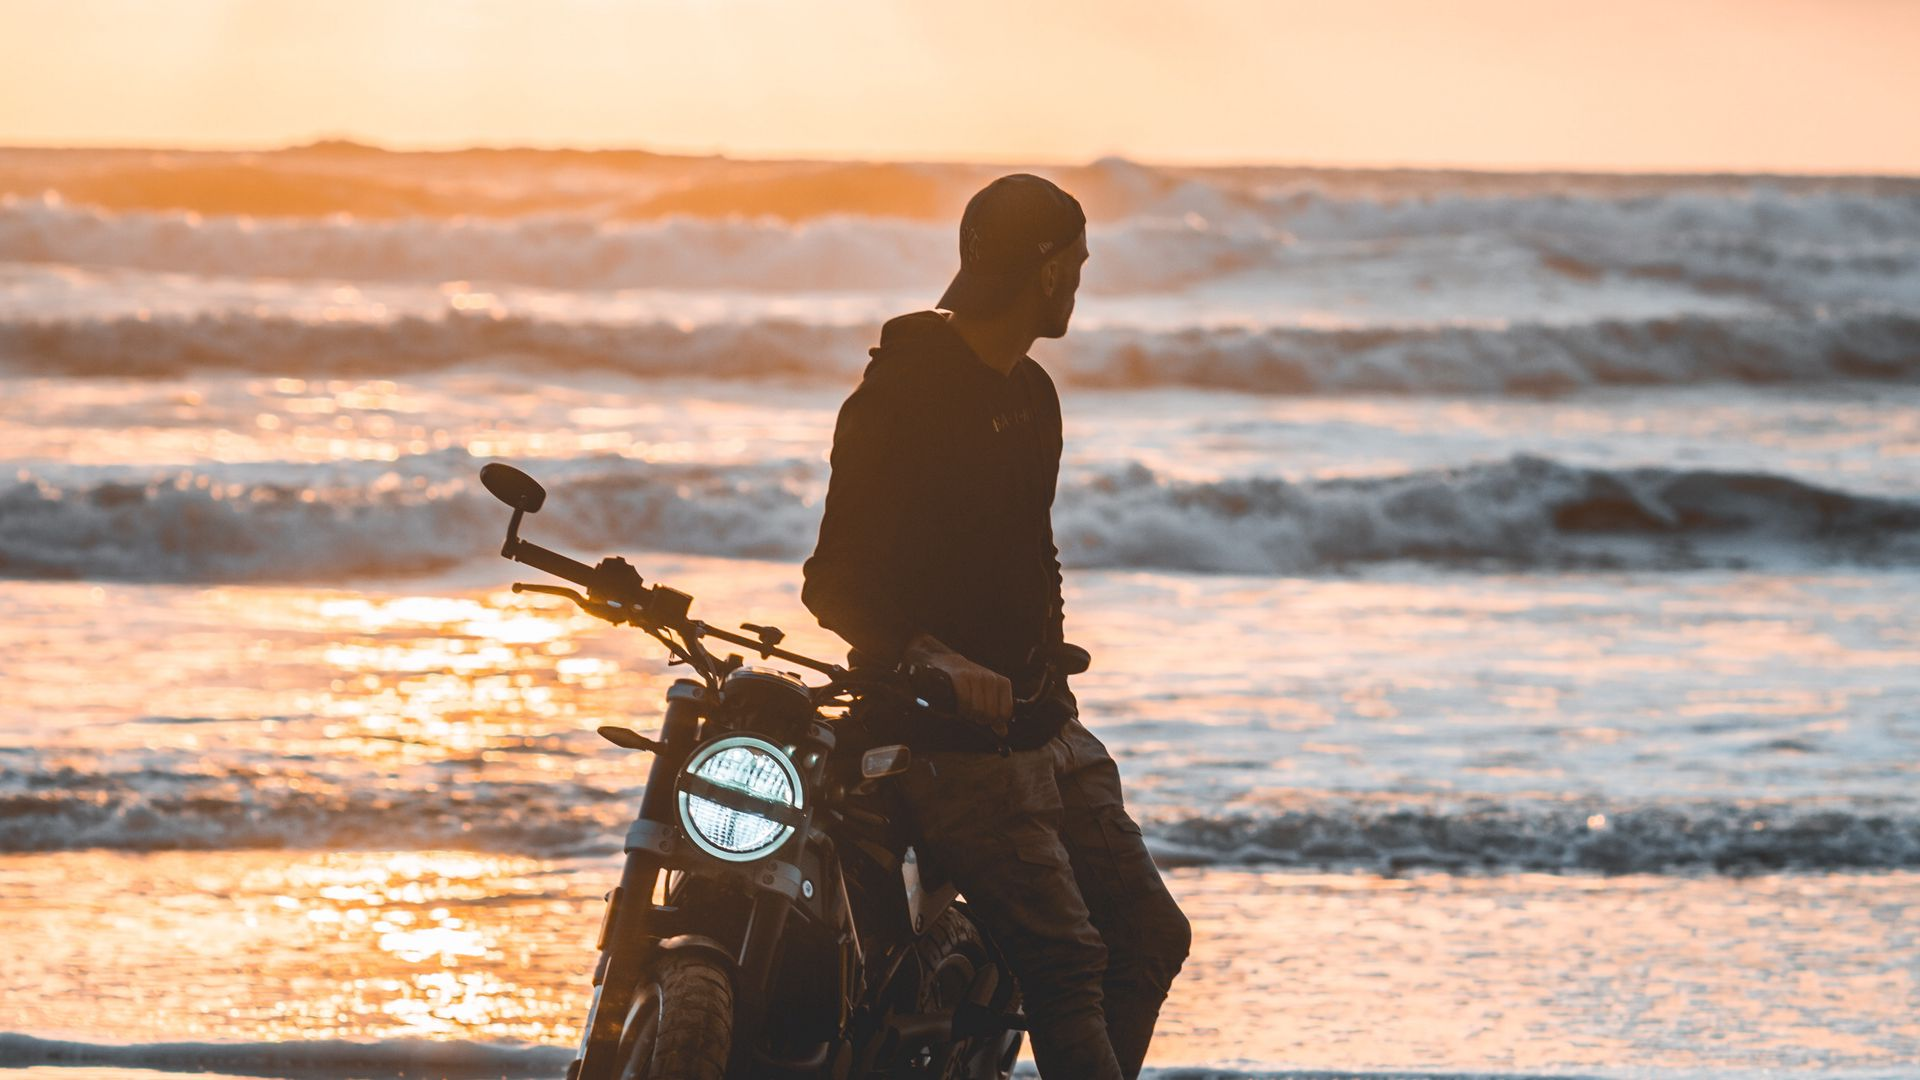 Motorcyclist, Motorcycle, Silhouette Download Free HD Wallpapers